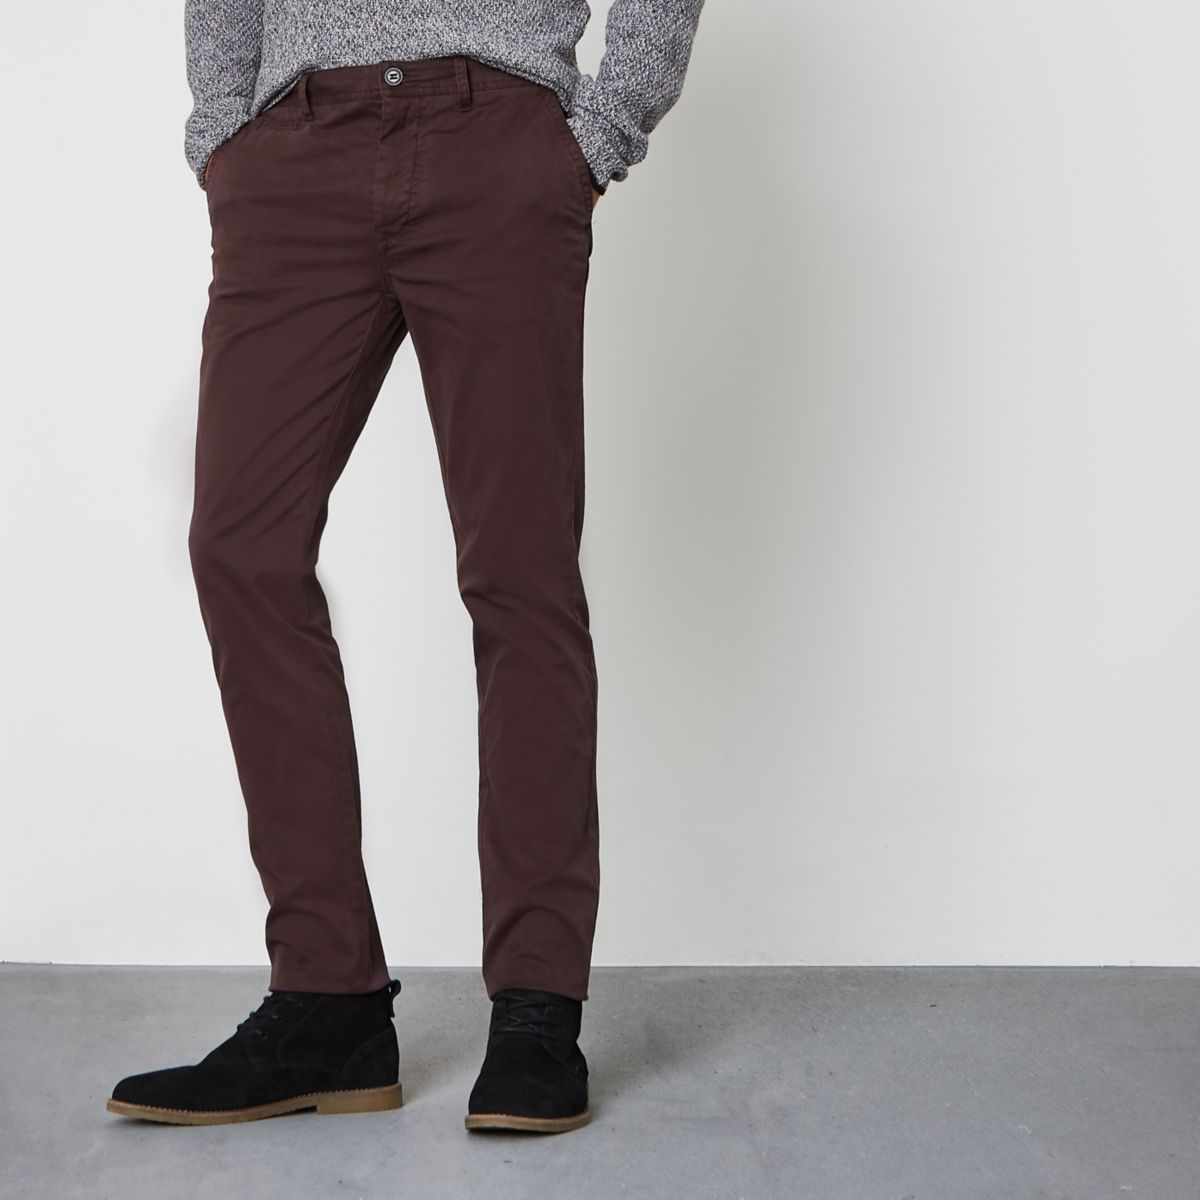 Dark red skinny chino pants